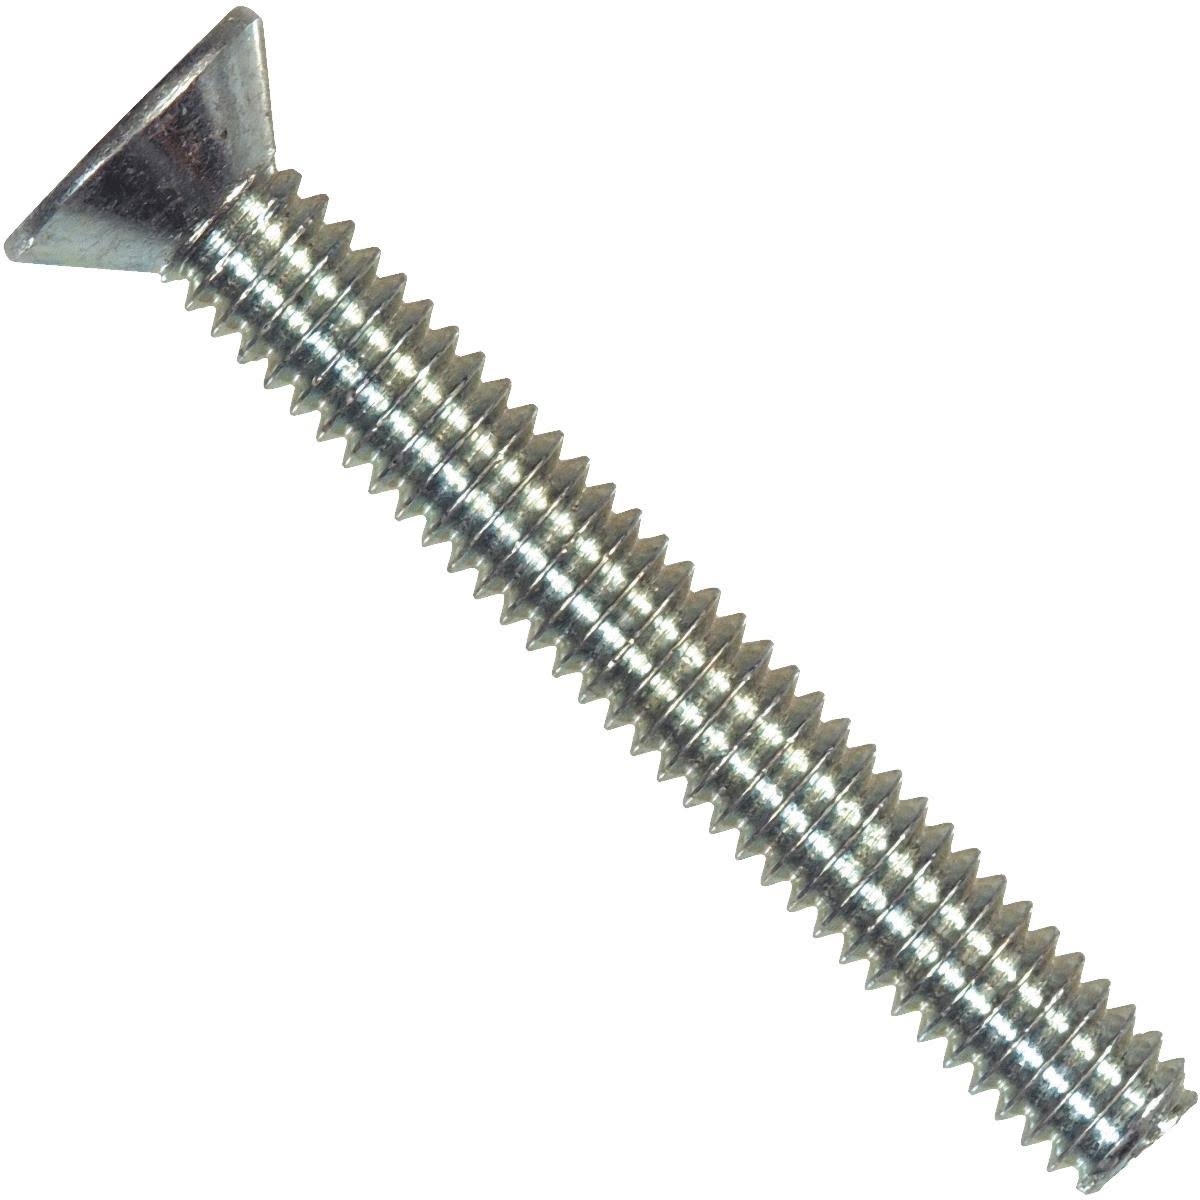 Hillman 101062 Flat Head Machine Screw